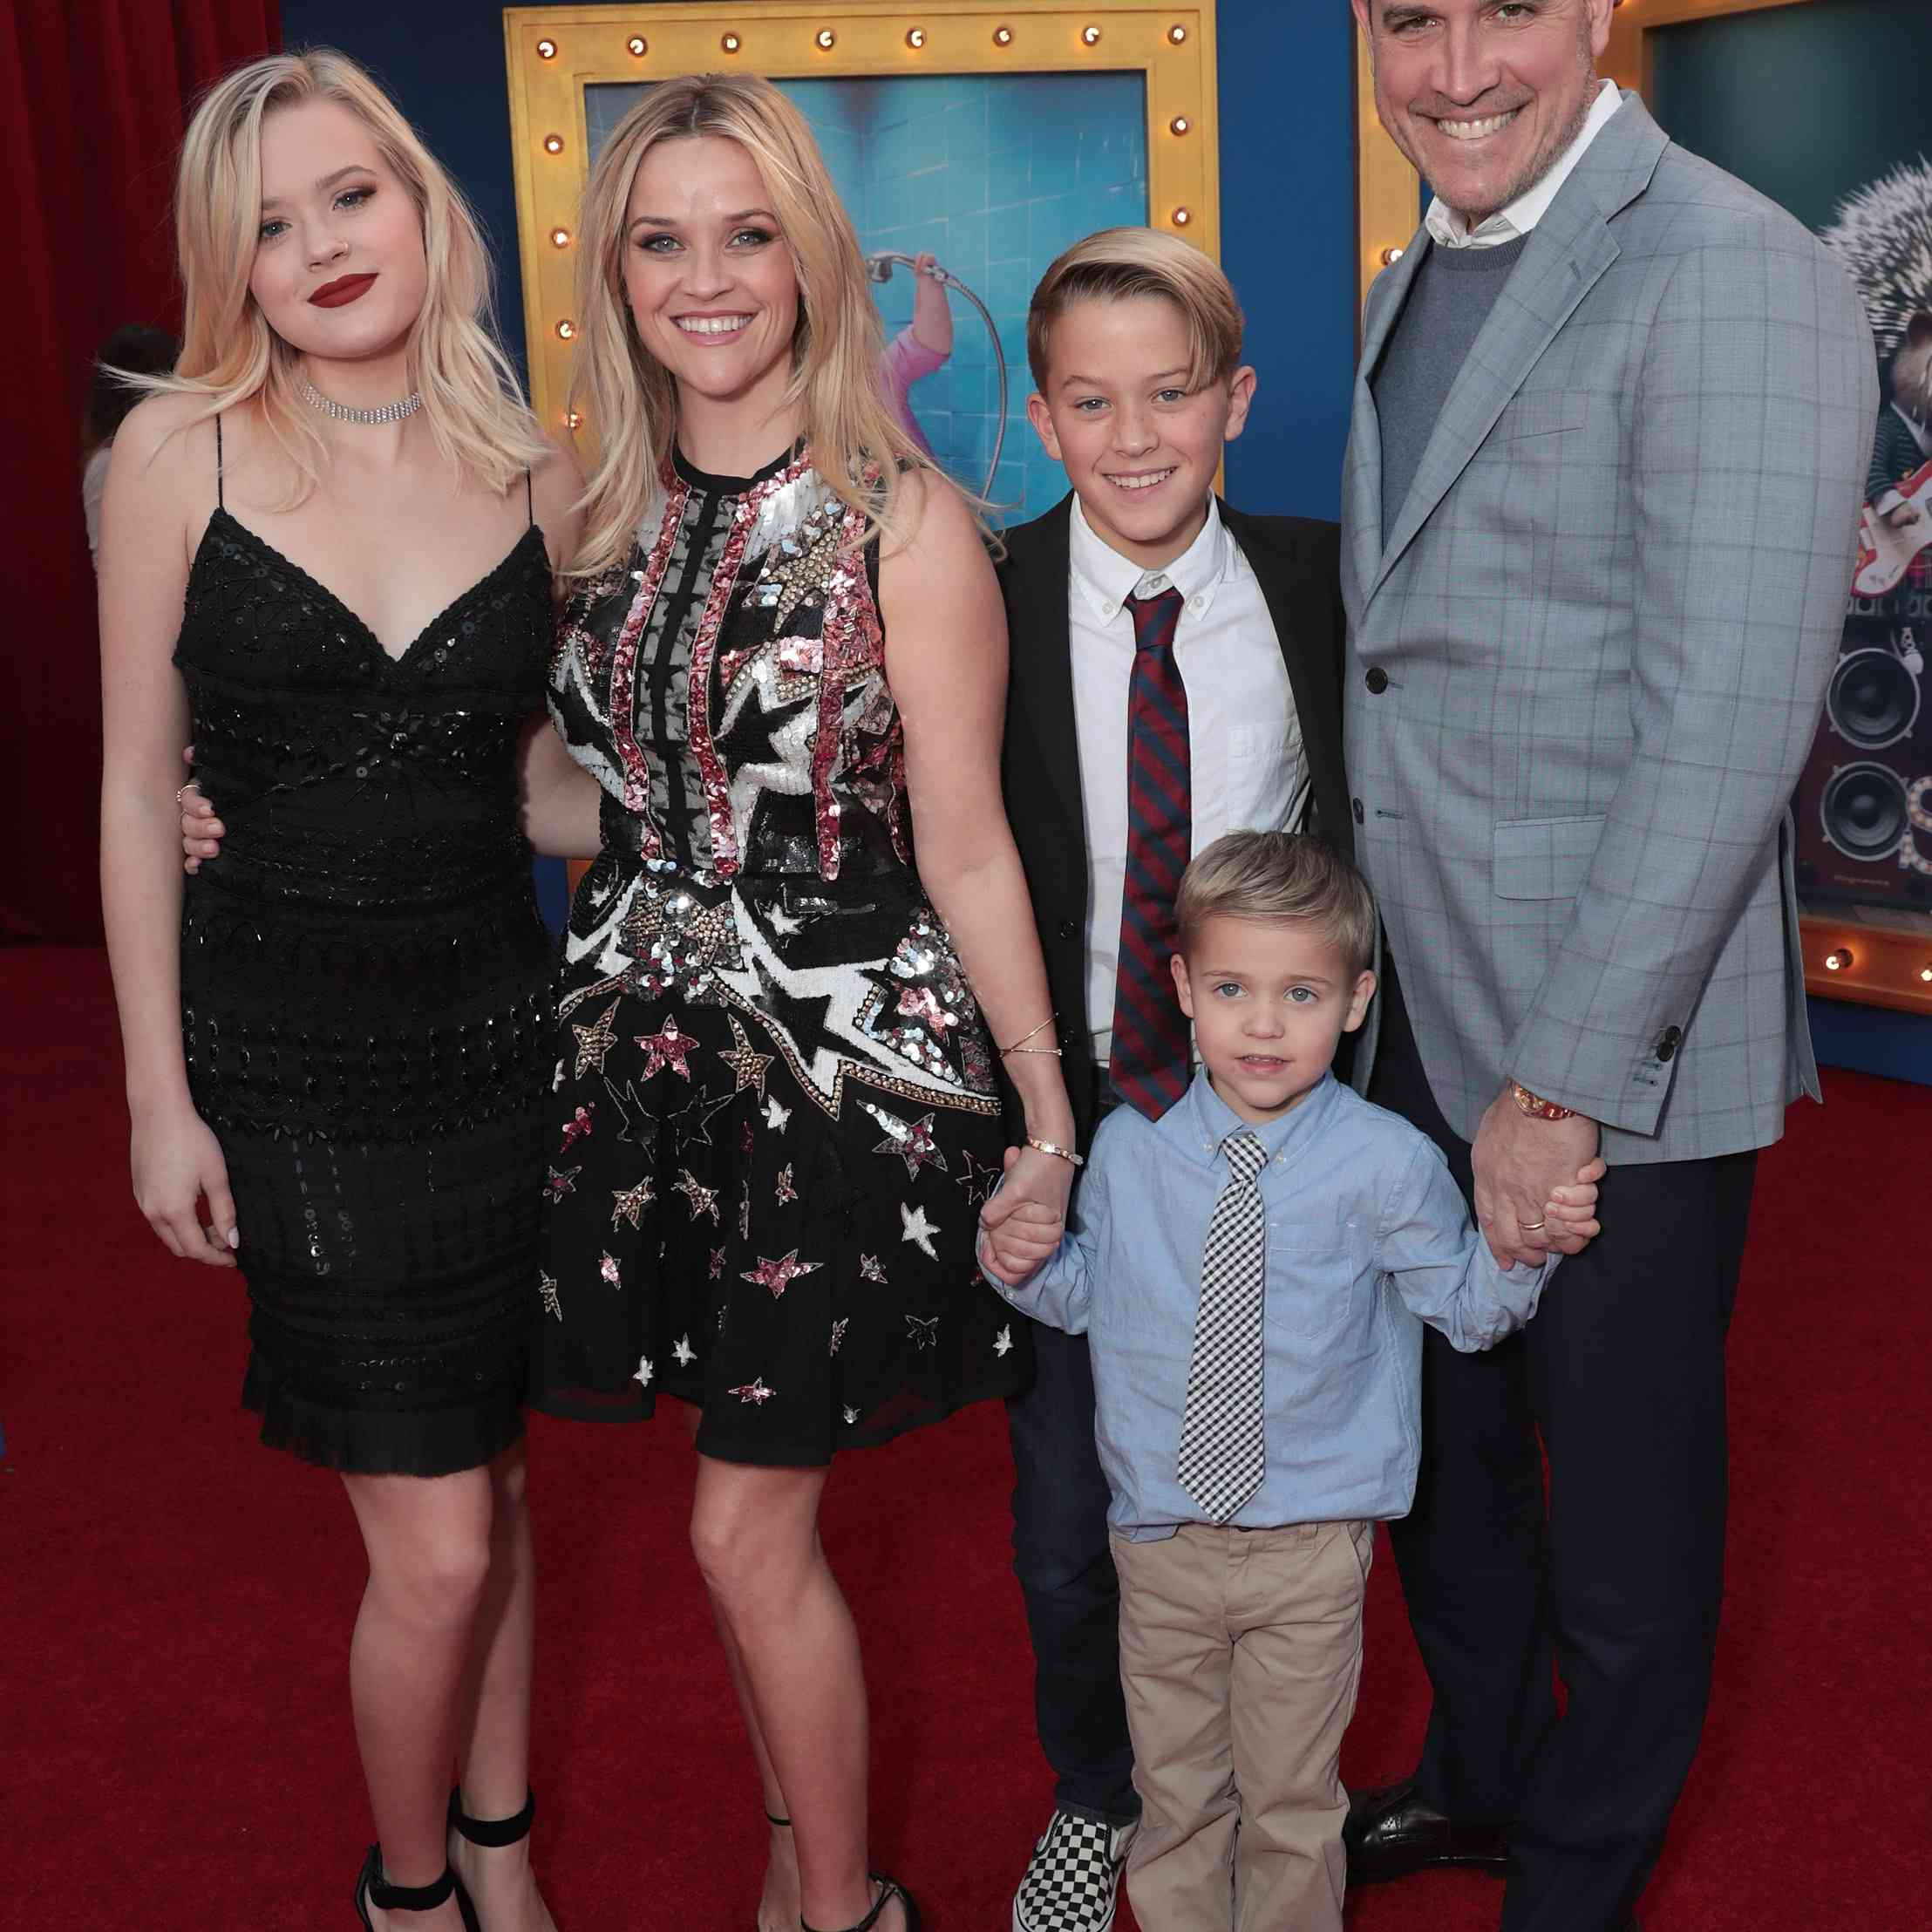 Reese Witherspooon, Jim Toth, and their children